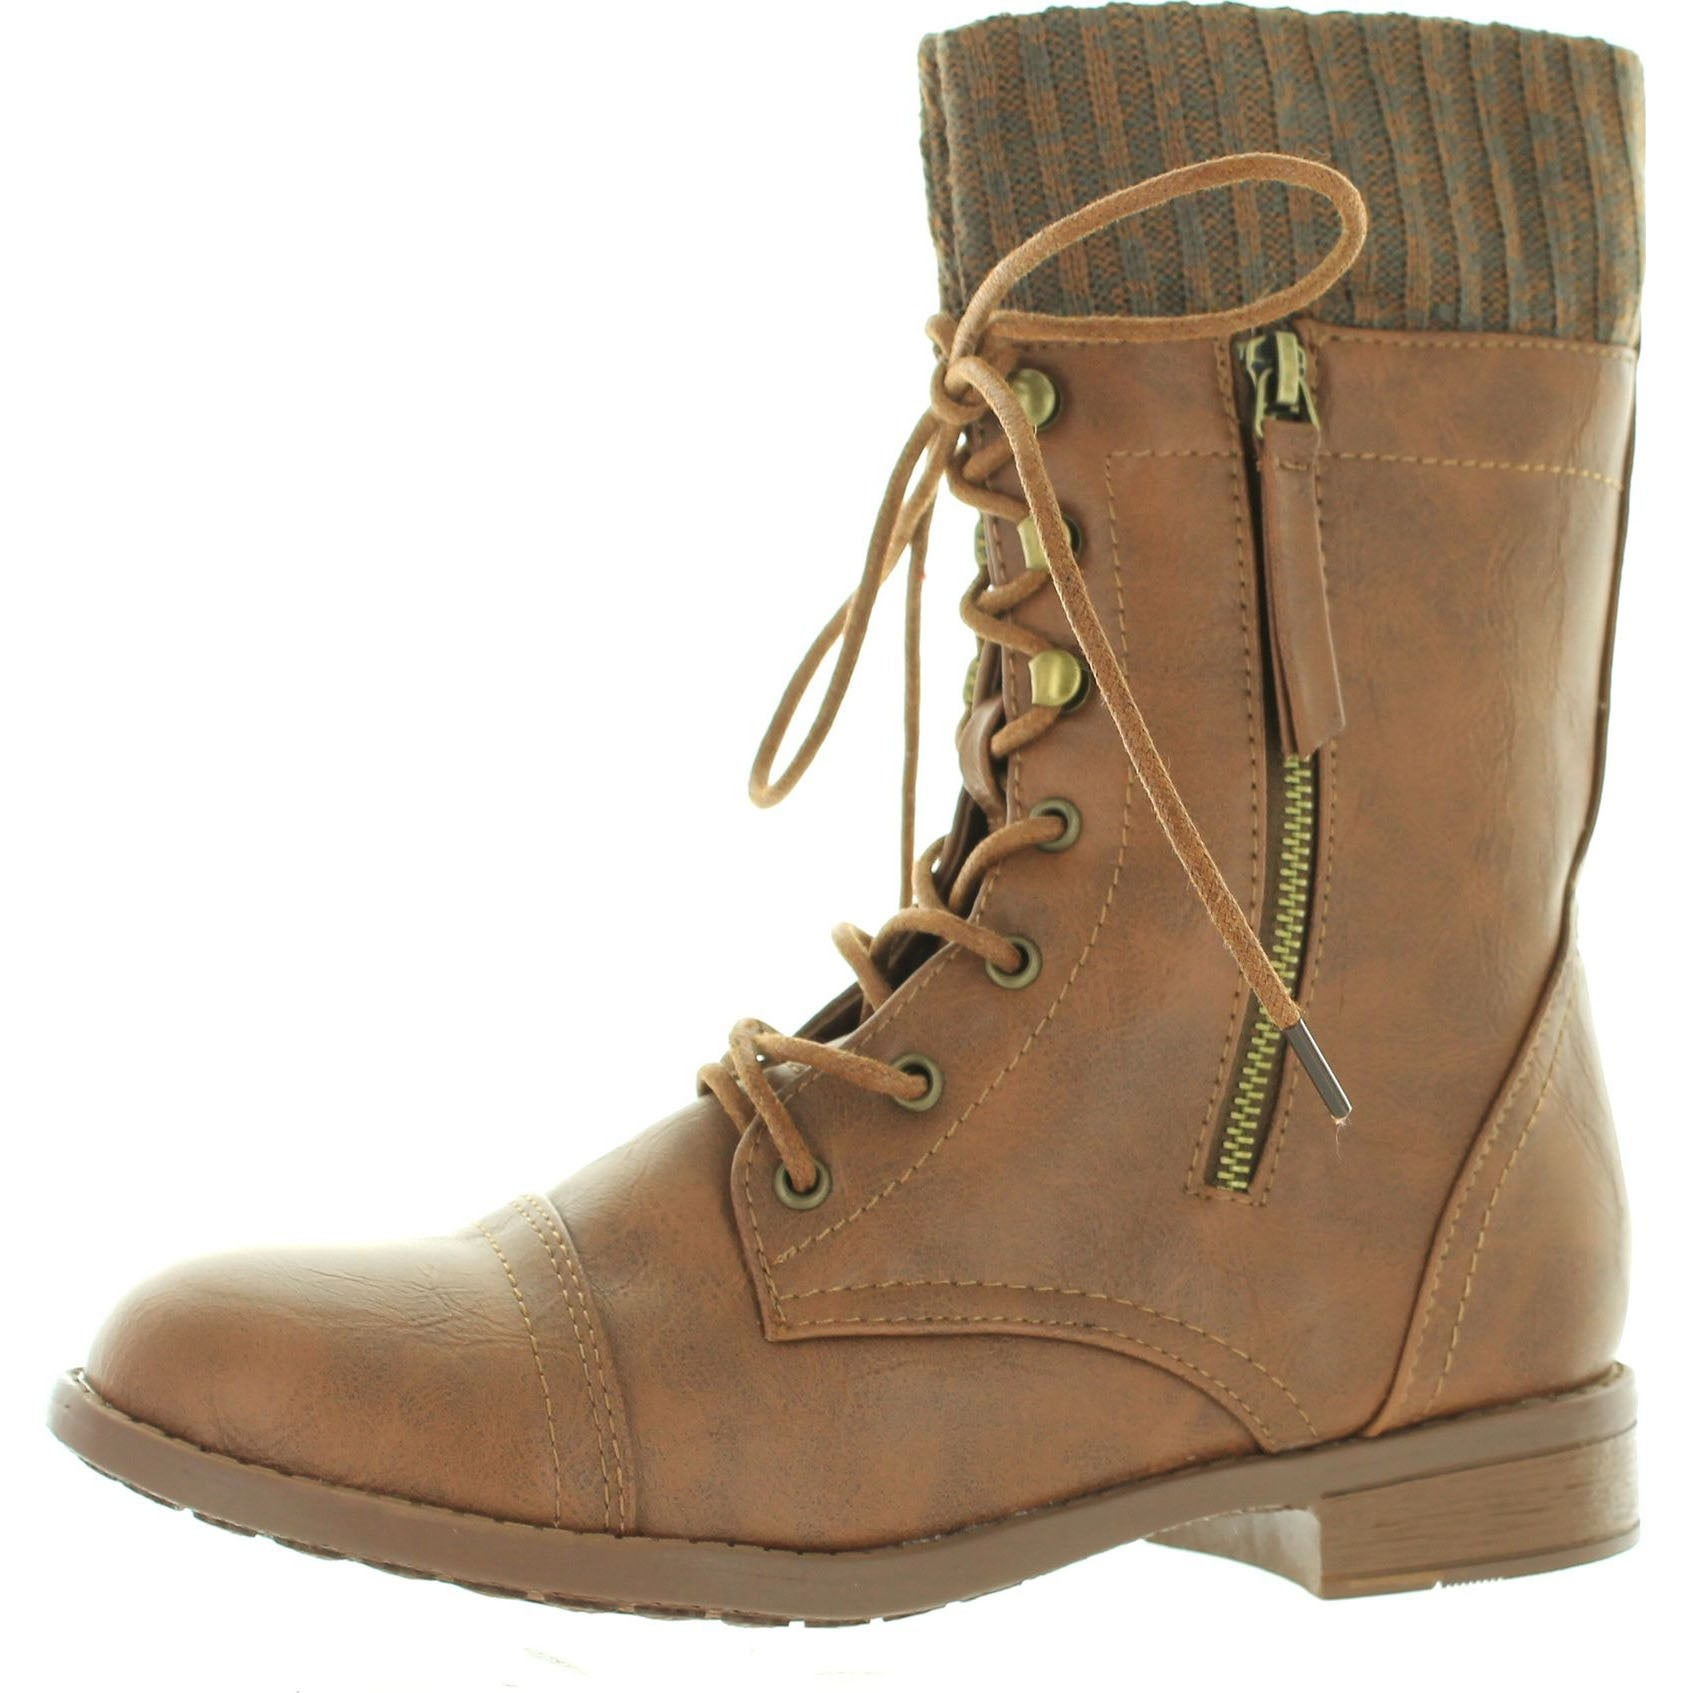 Shop Forever Link Womens Justina-58 Sweater Cuff Combat Boots - Free ... b0b26942a9